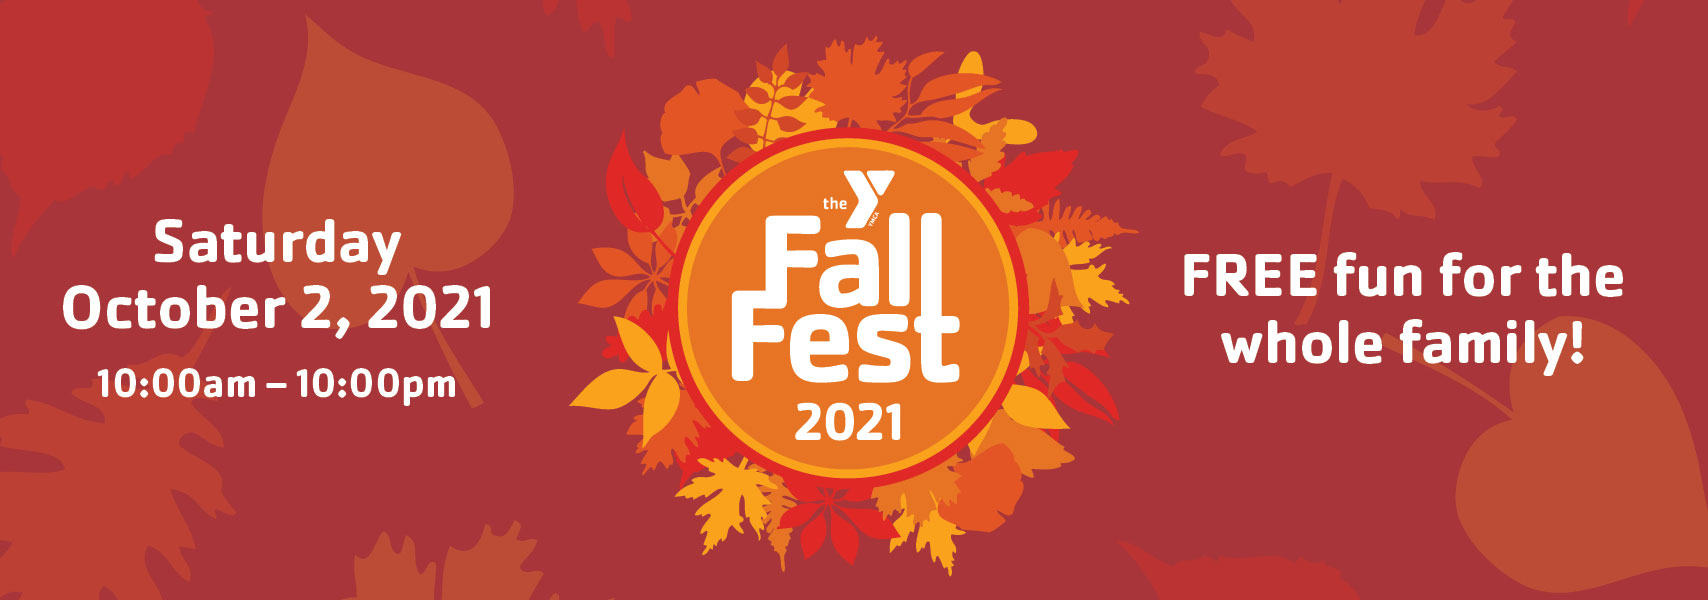 Ymca Fall Fest - October 2 - Fun for the whole family